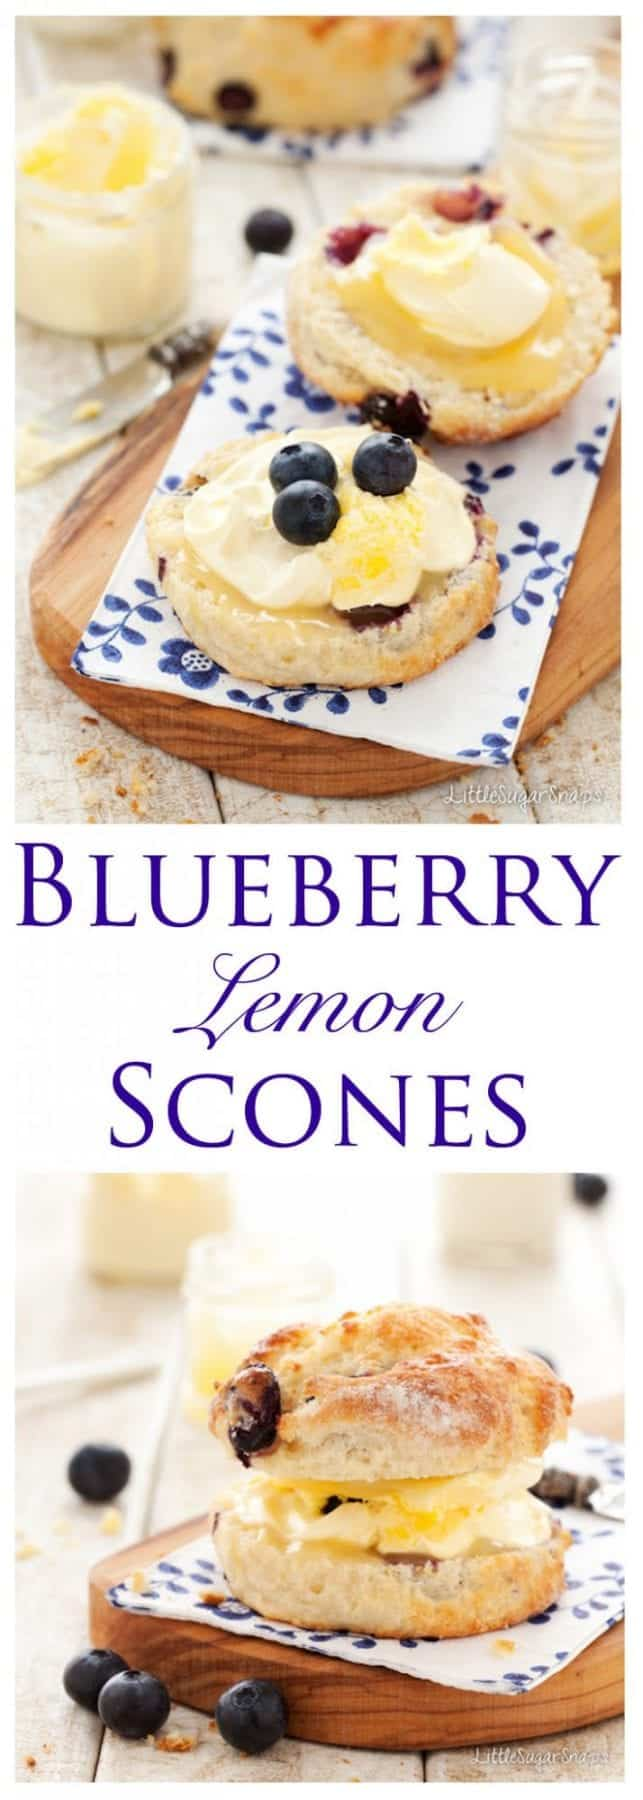 Blueberry Lemon Scones: upgrade the classic British Cream Tea with these Blueberry Lemon Scones. Fruity & zesty with a soft, tender crumb and a tangy sugared lemon crust. Pile high with lemon curd and clotted cream for a lusciously indulgent summertime treat